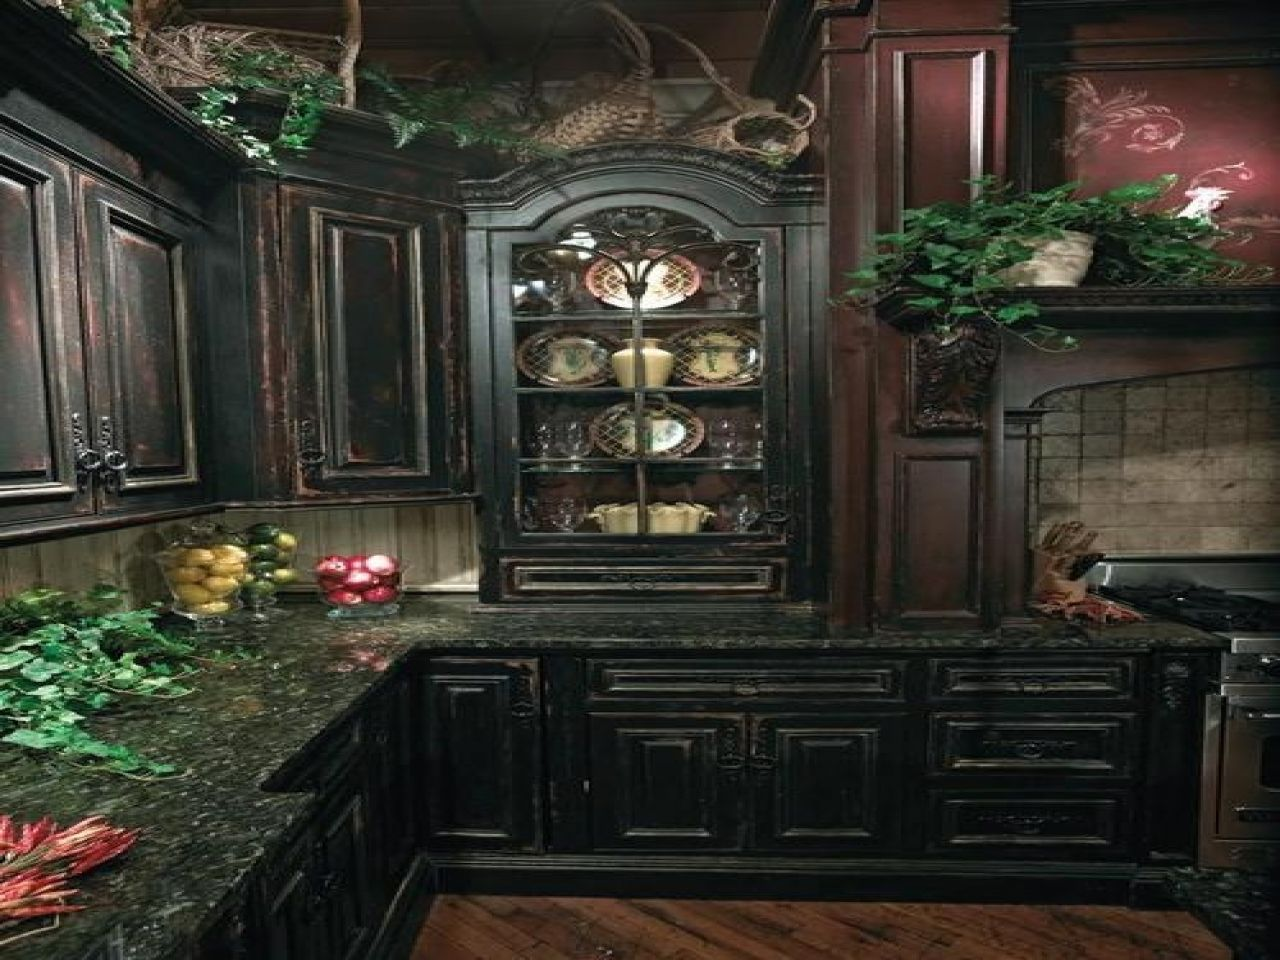 Best images photos and pictures gallery about gothic kitchen - gothic home decor #gothicdecor #gothichomedecor #homedecor #gothickitchen #kitchendecor & Mysterious Gothic Home Decor and Victorian Gothic Design Ideas ...